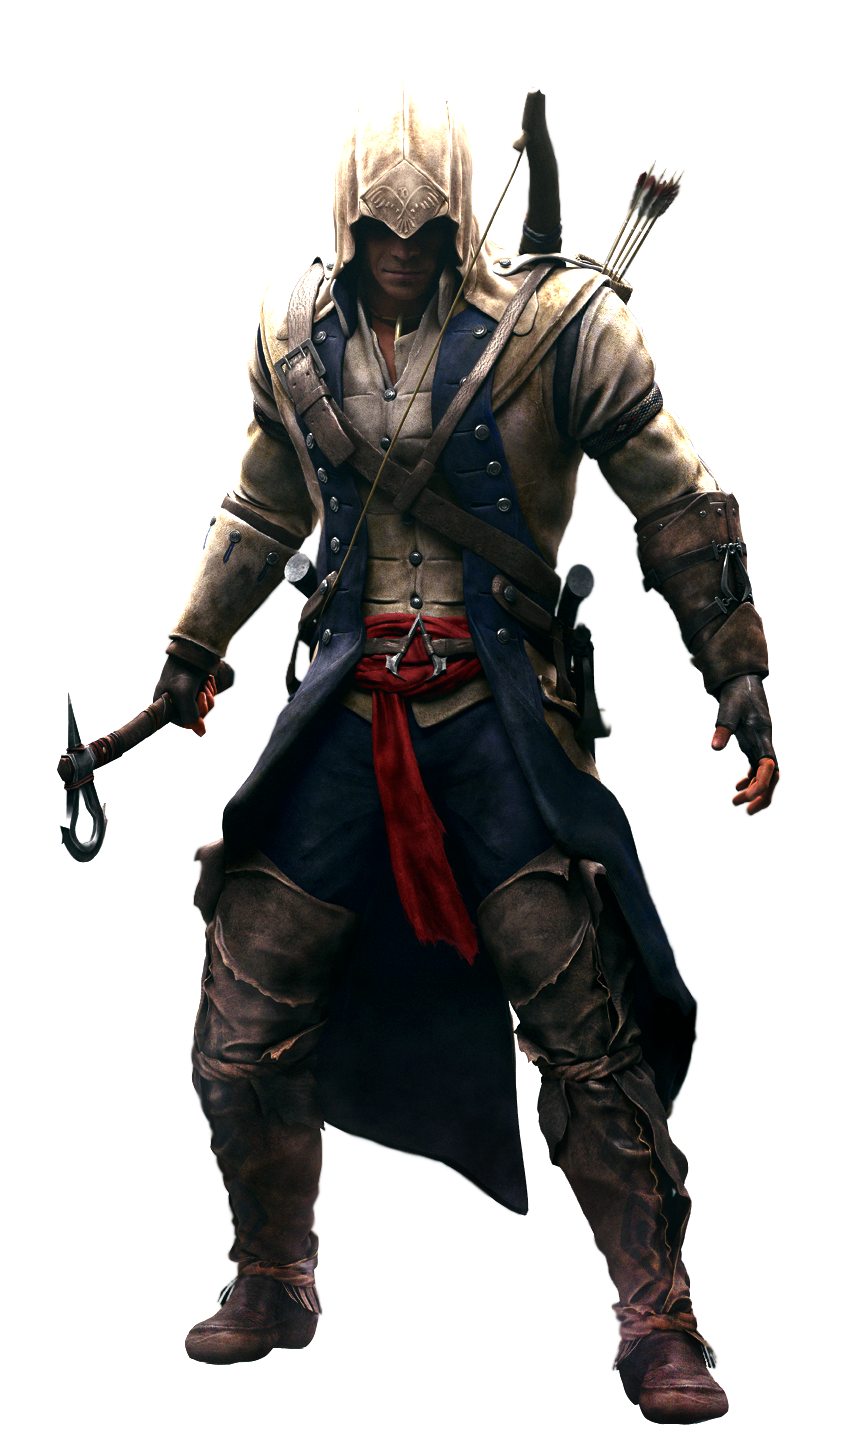 shay transparent assassin's creed